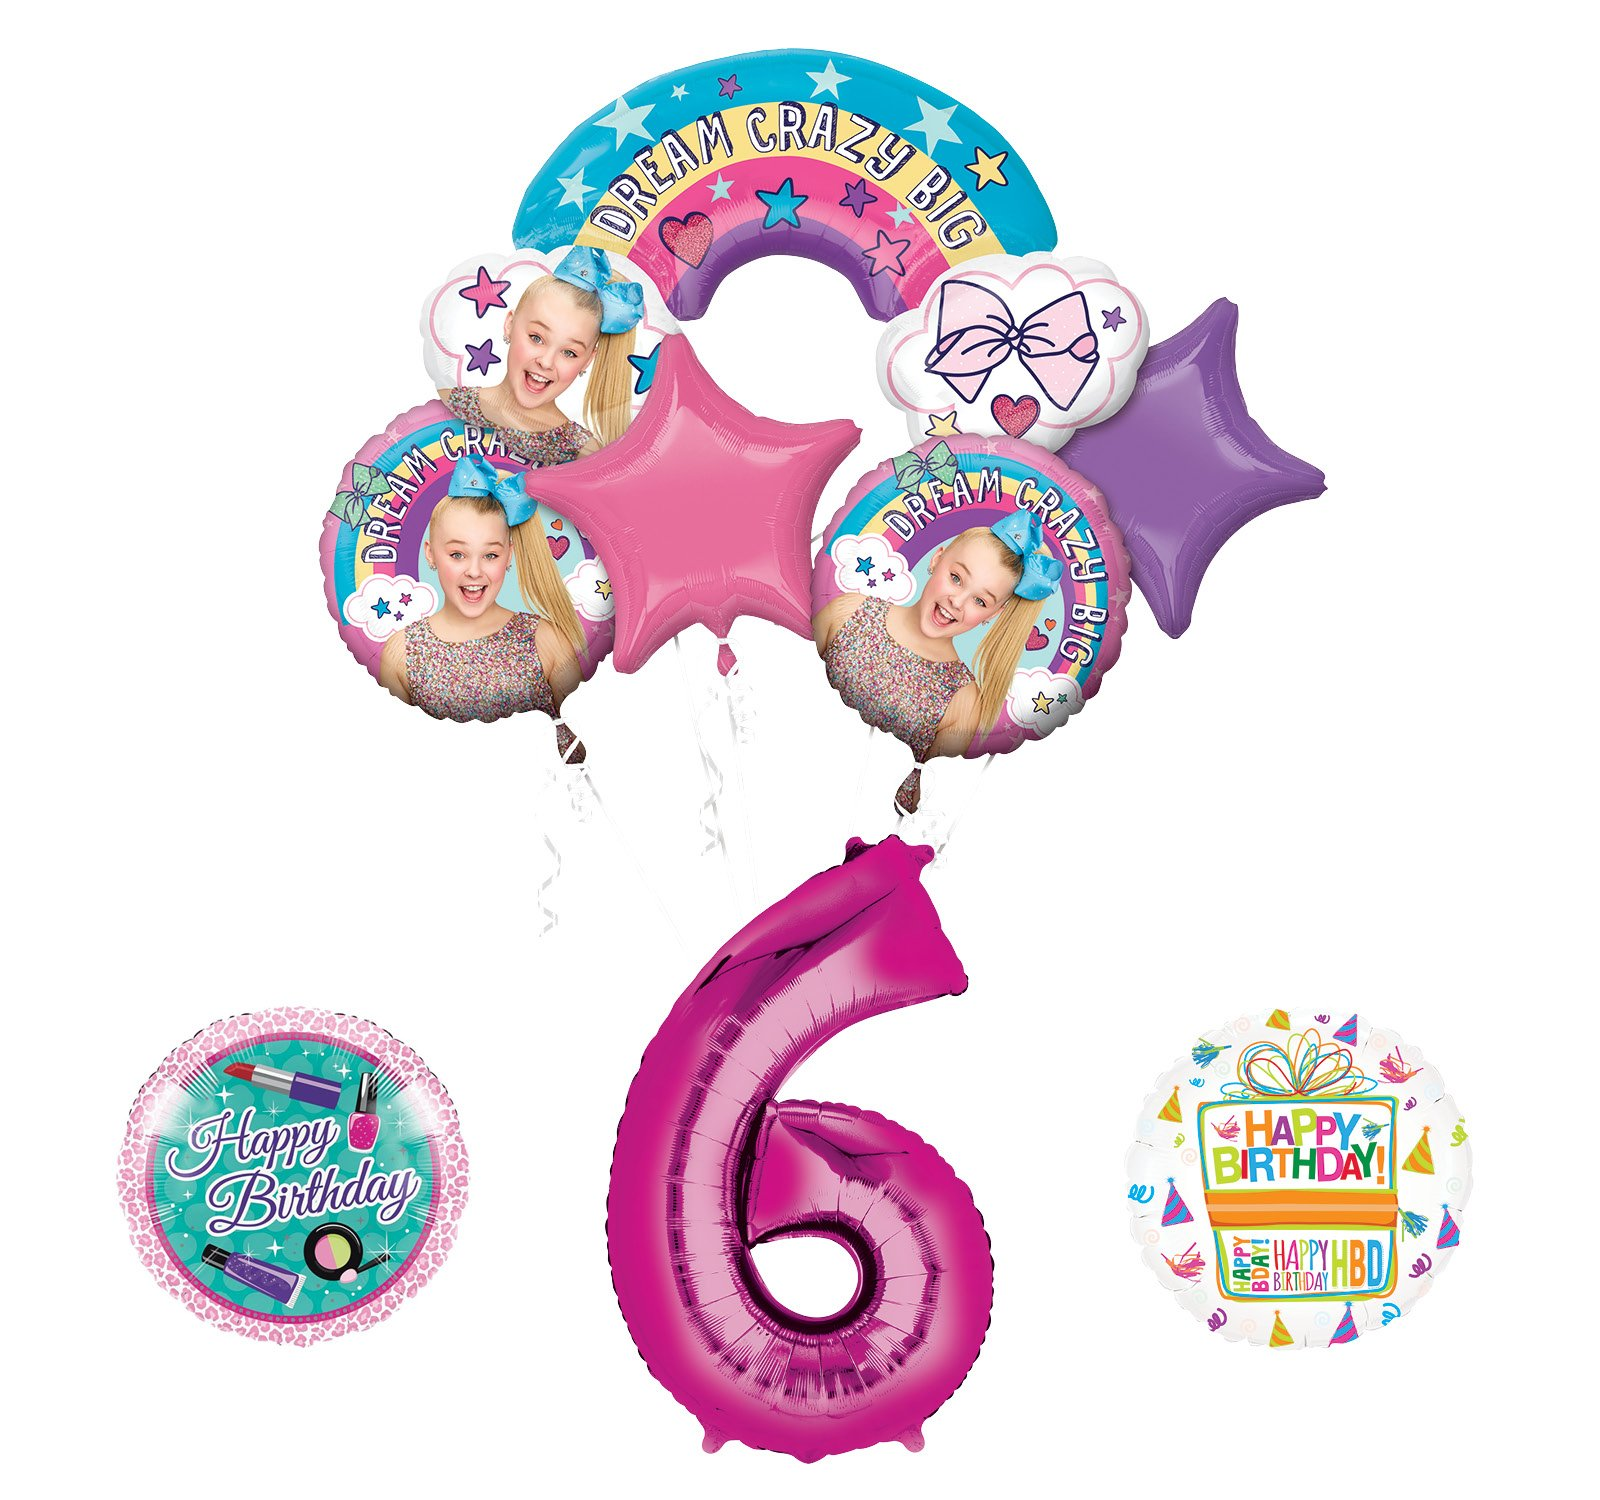 Mayflower Products JoJo Siwa 6th Birthday Balloon Bouquet Decorations and Party Supplies